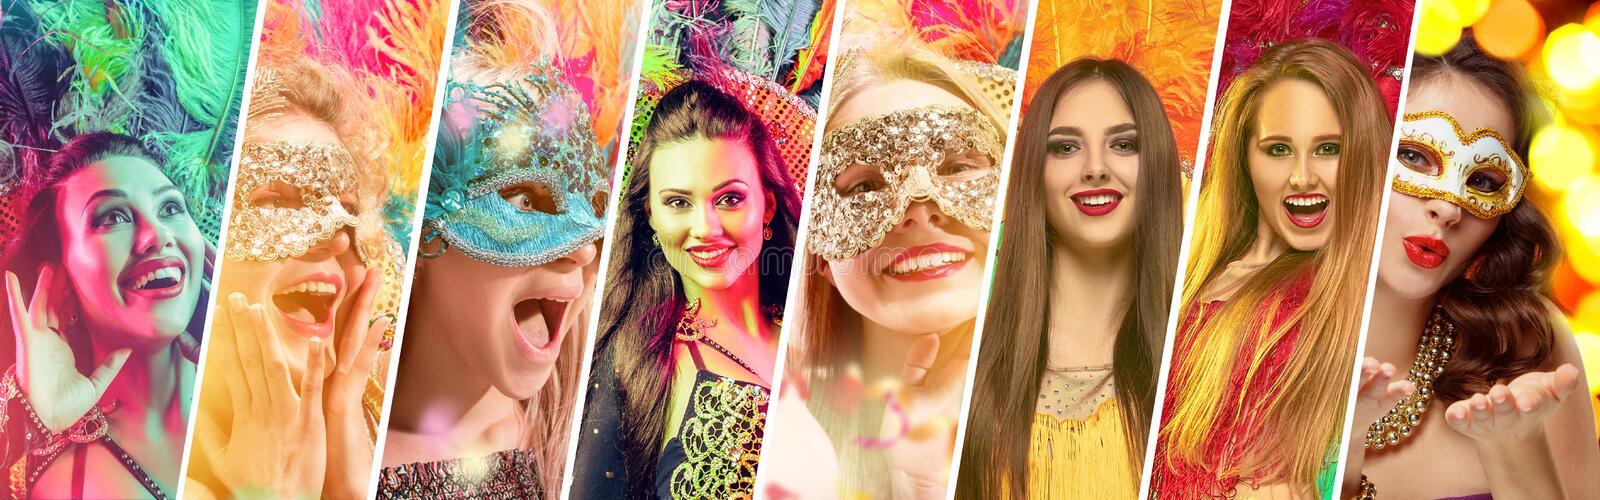 Beautiful young women in carnival mask. Beautiful surprised women in carnival mask. Models wearing masquerade masks at party on background with magic glow royalty free stock image